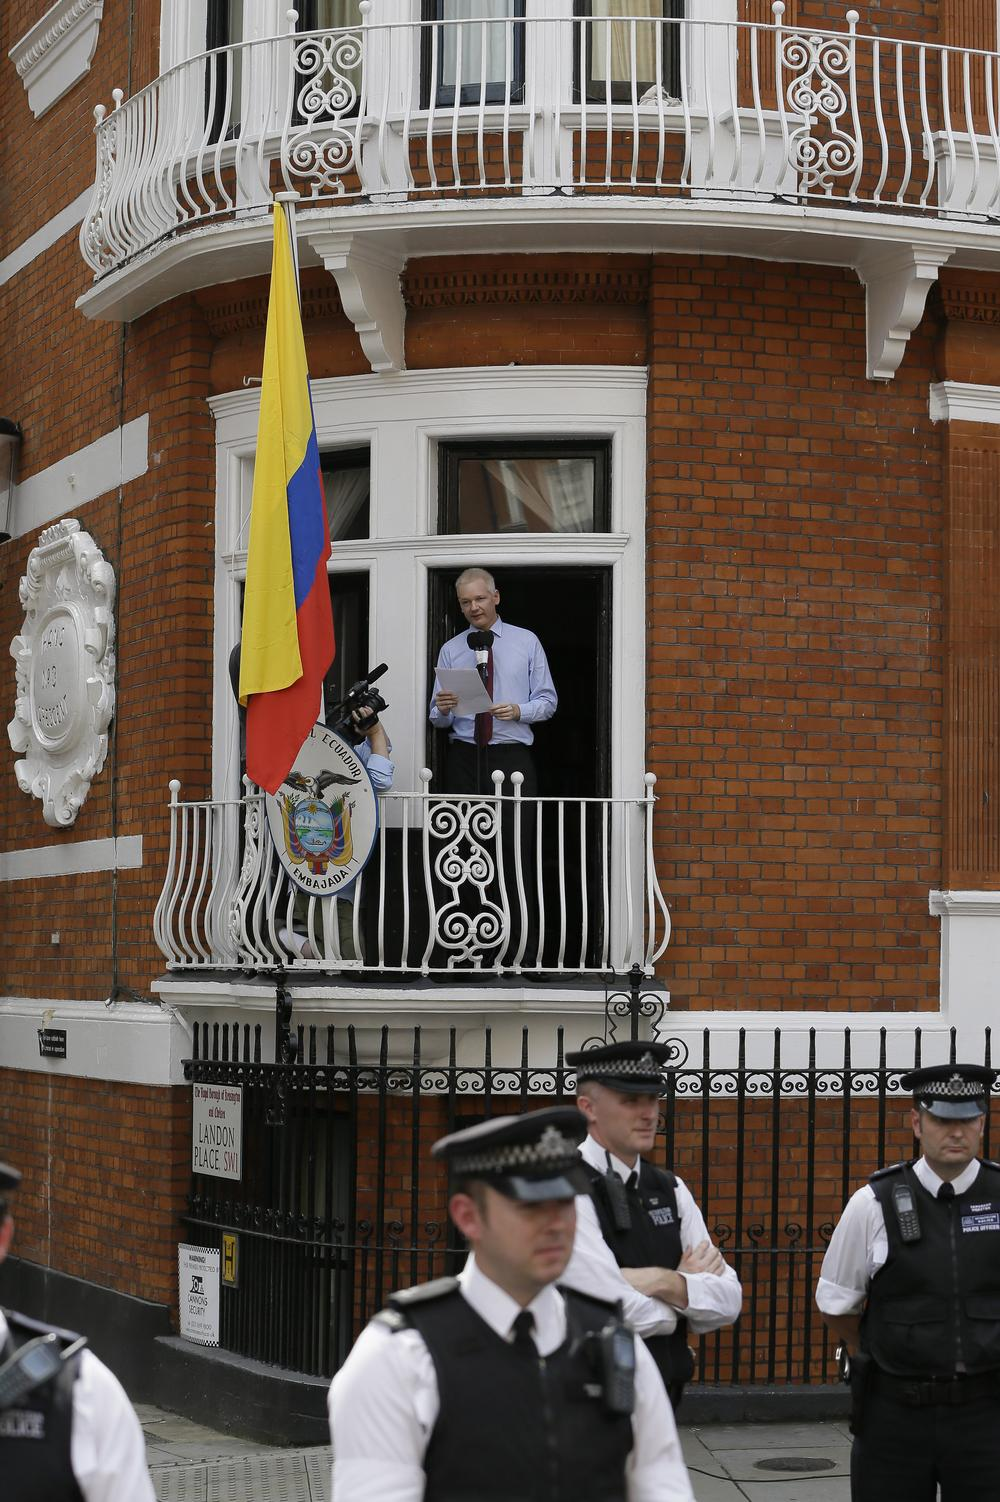 Julian Assange, founder of WikiLeaks, makes a statement from a balcony of the Equador Embassy in London. (AP)